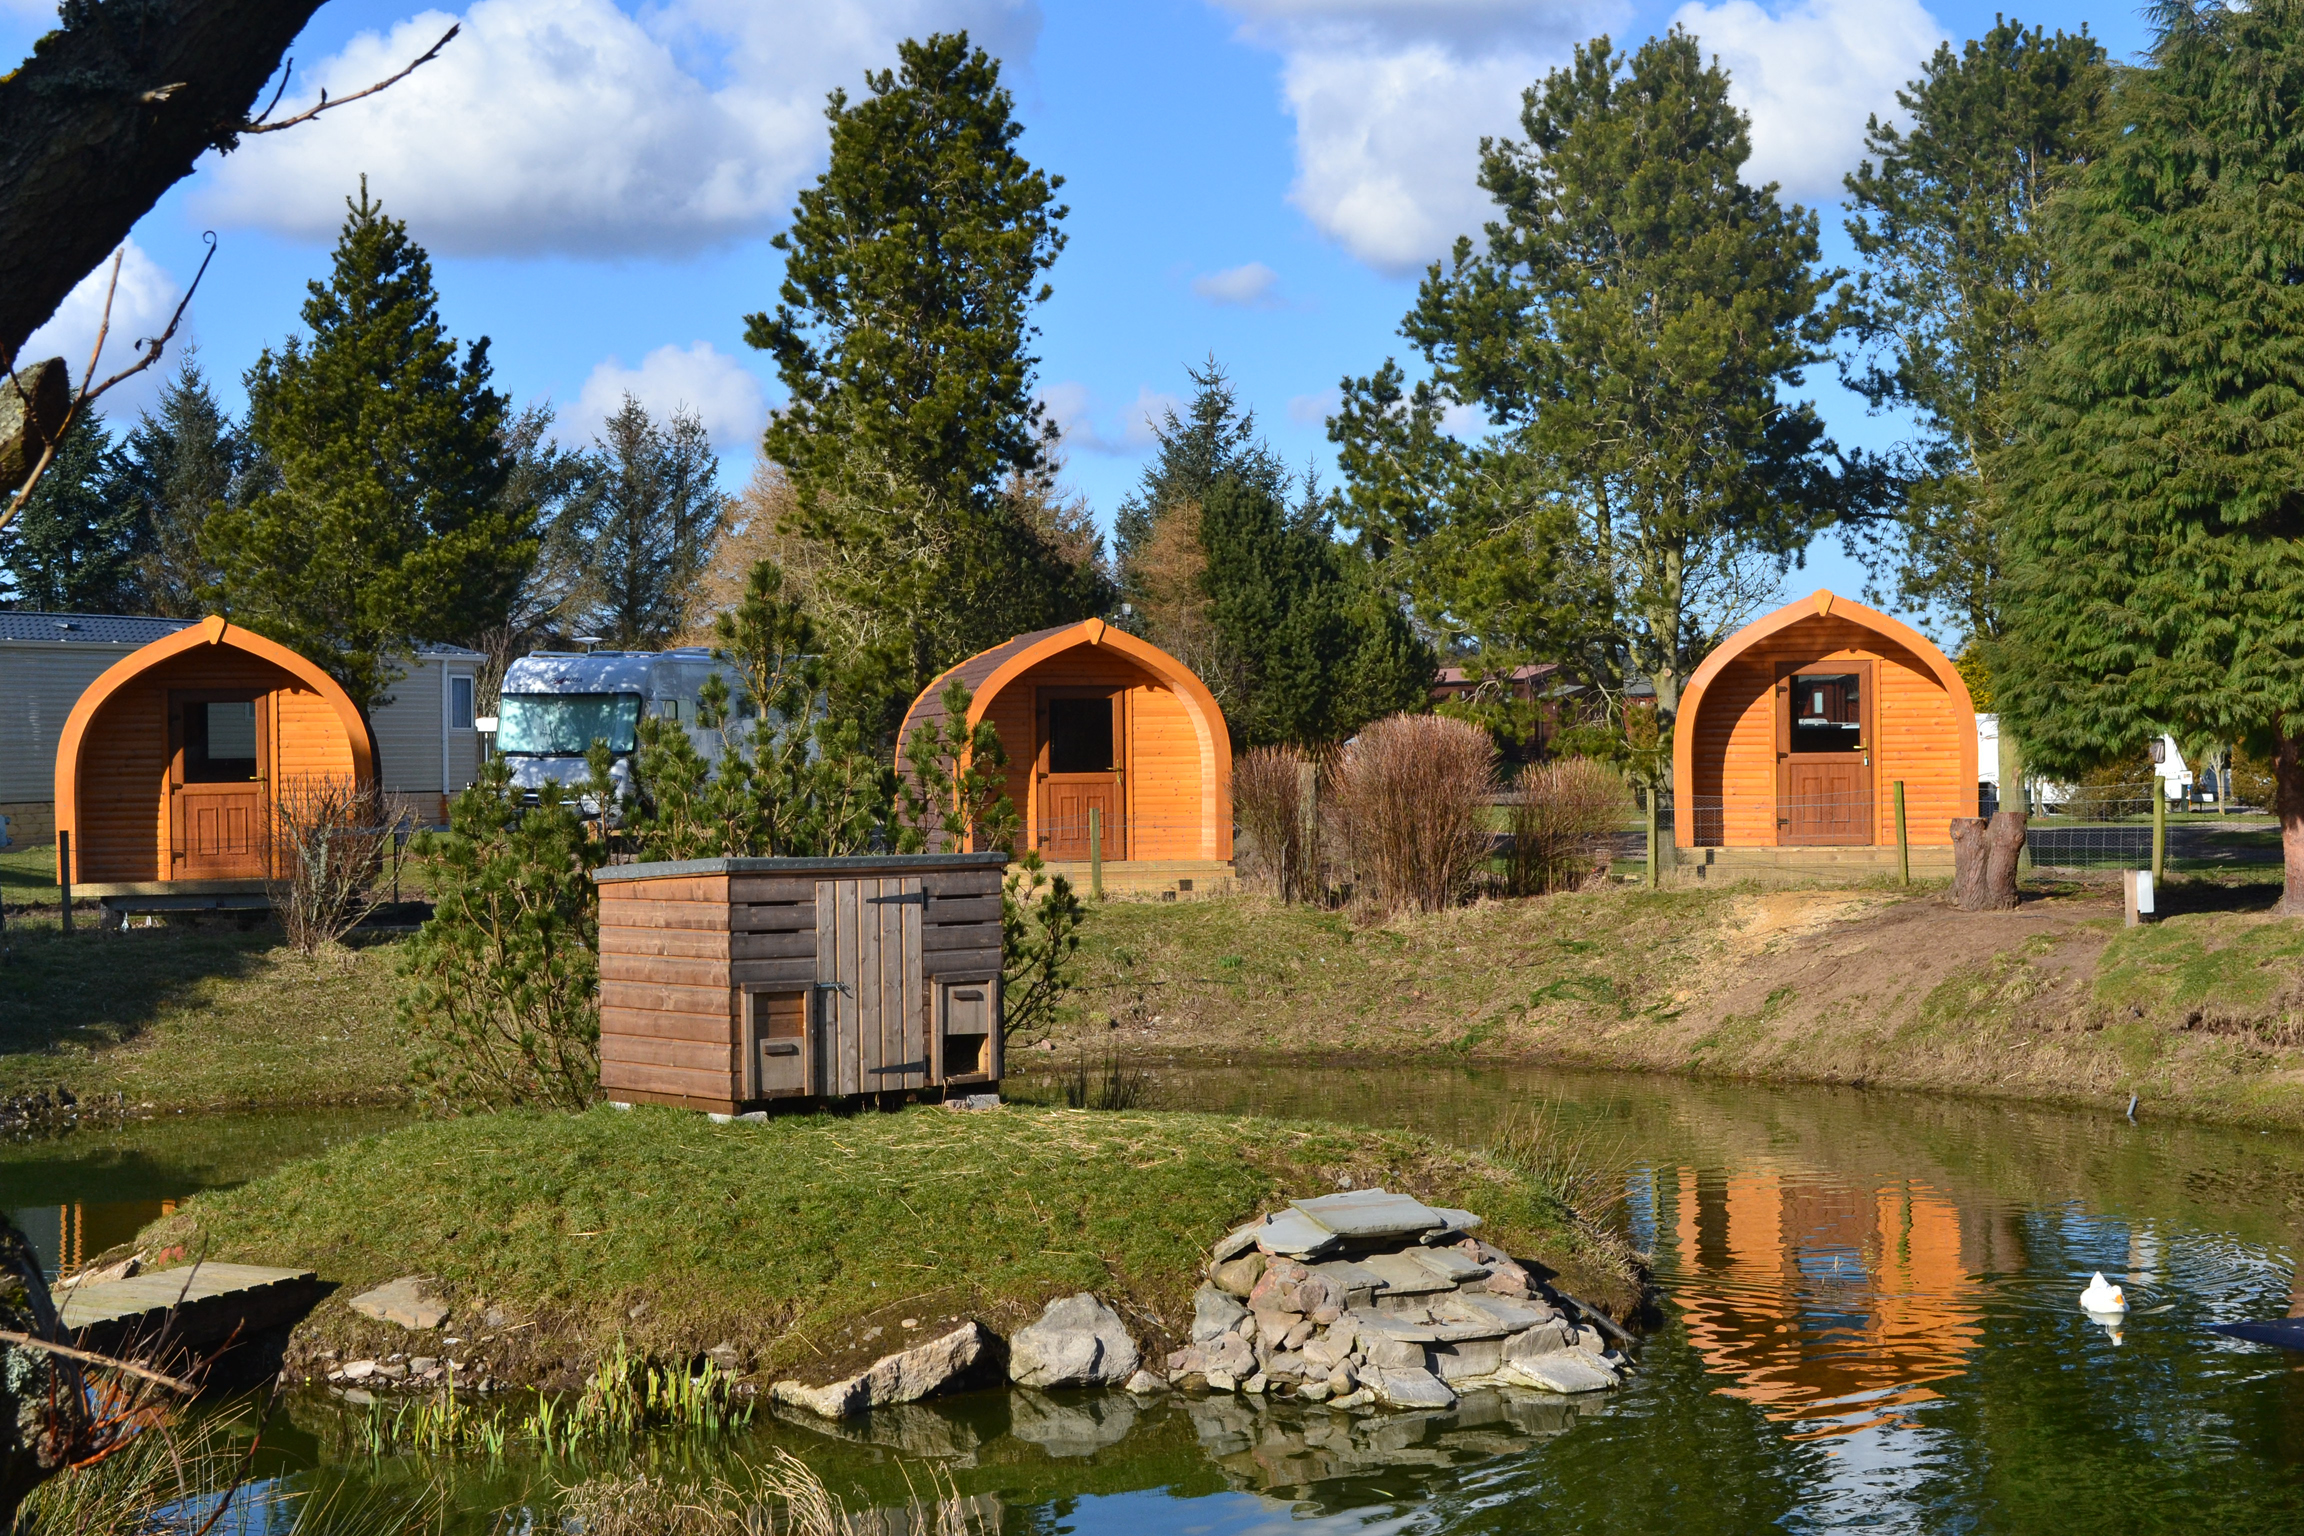 Camping pods at Deeside